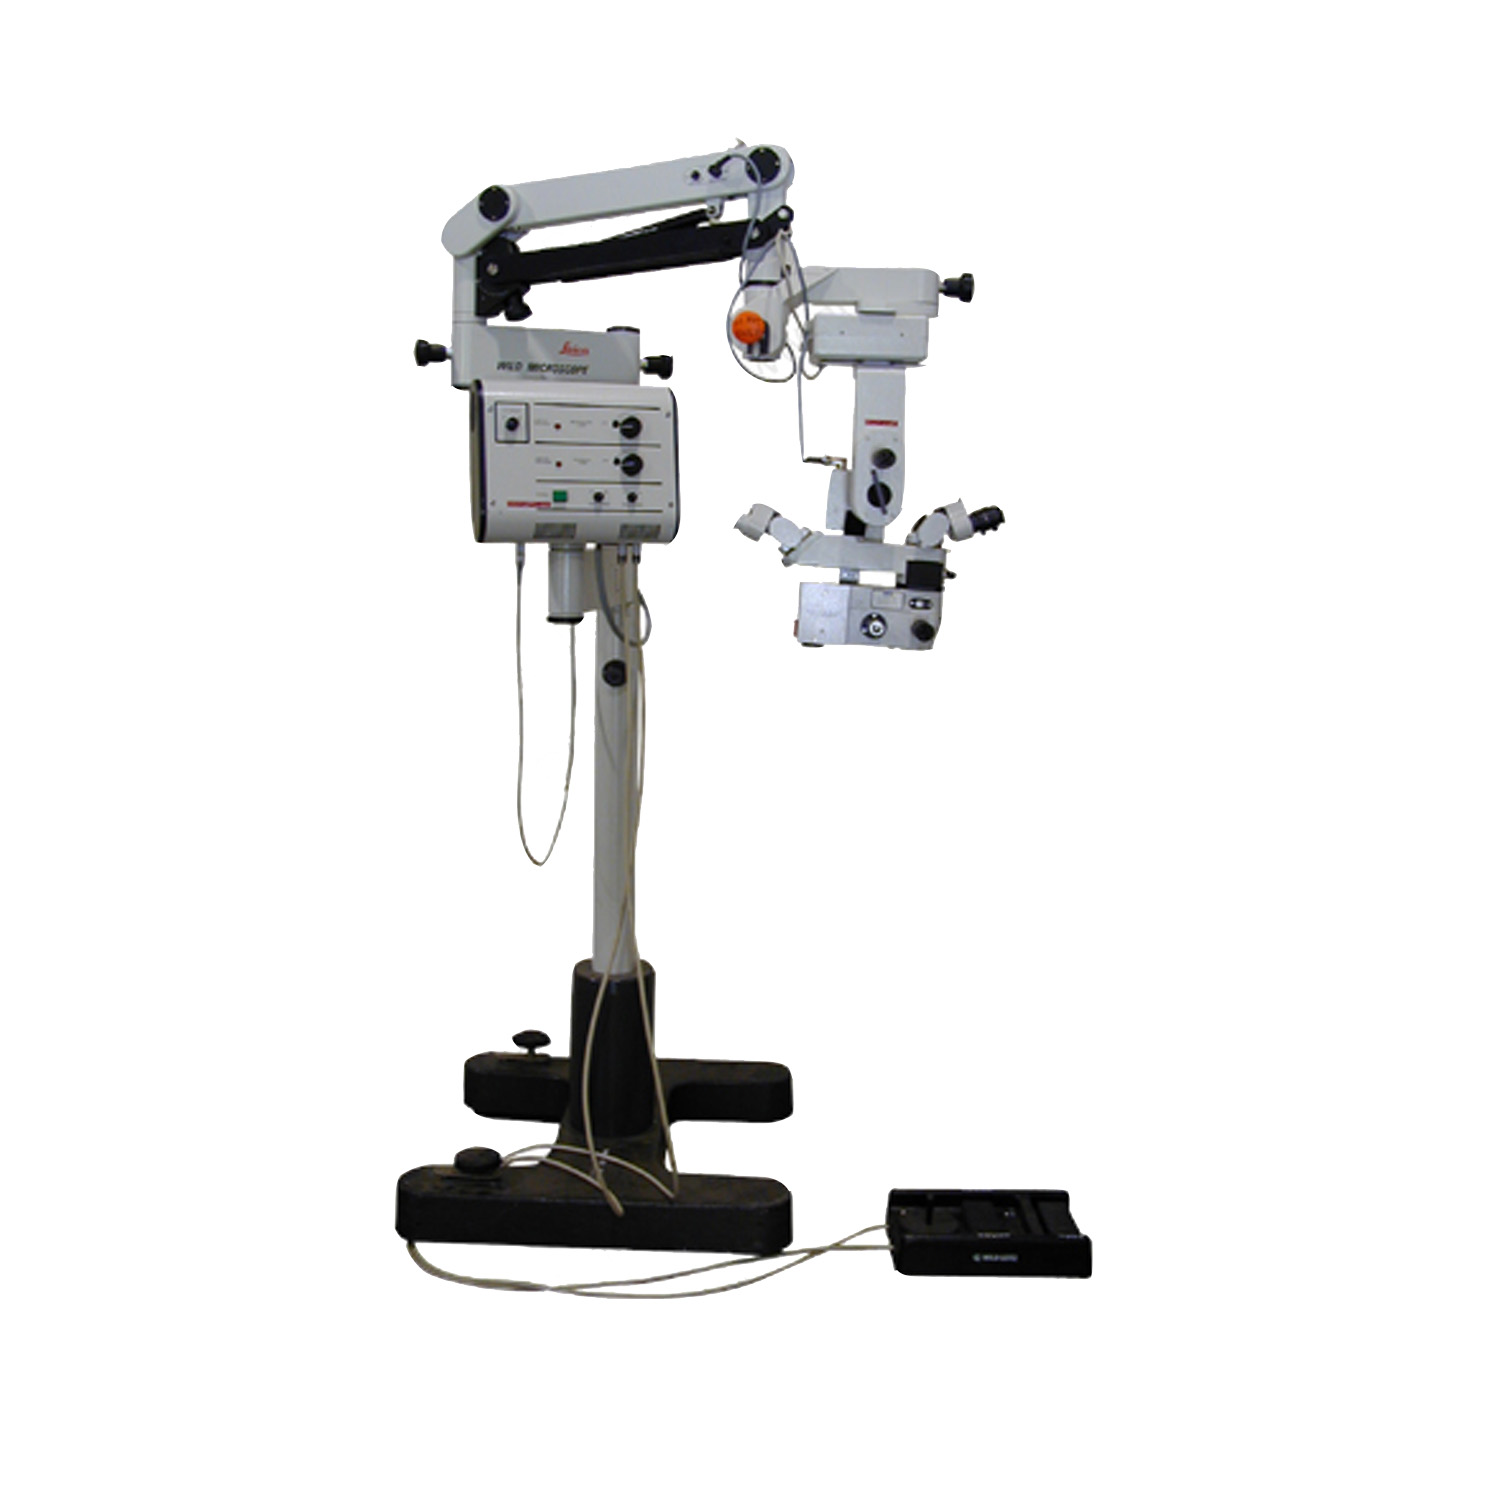 Refurbished Zeiss Opmi 6 CFC Surgical Microscope